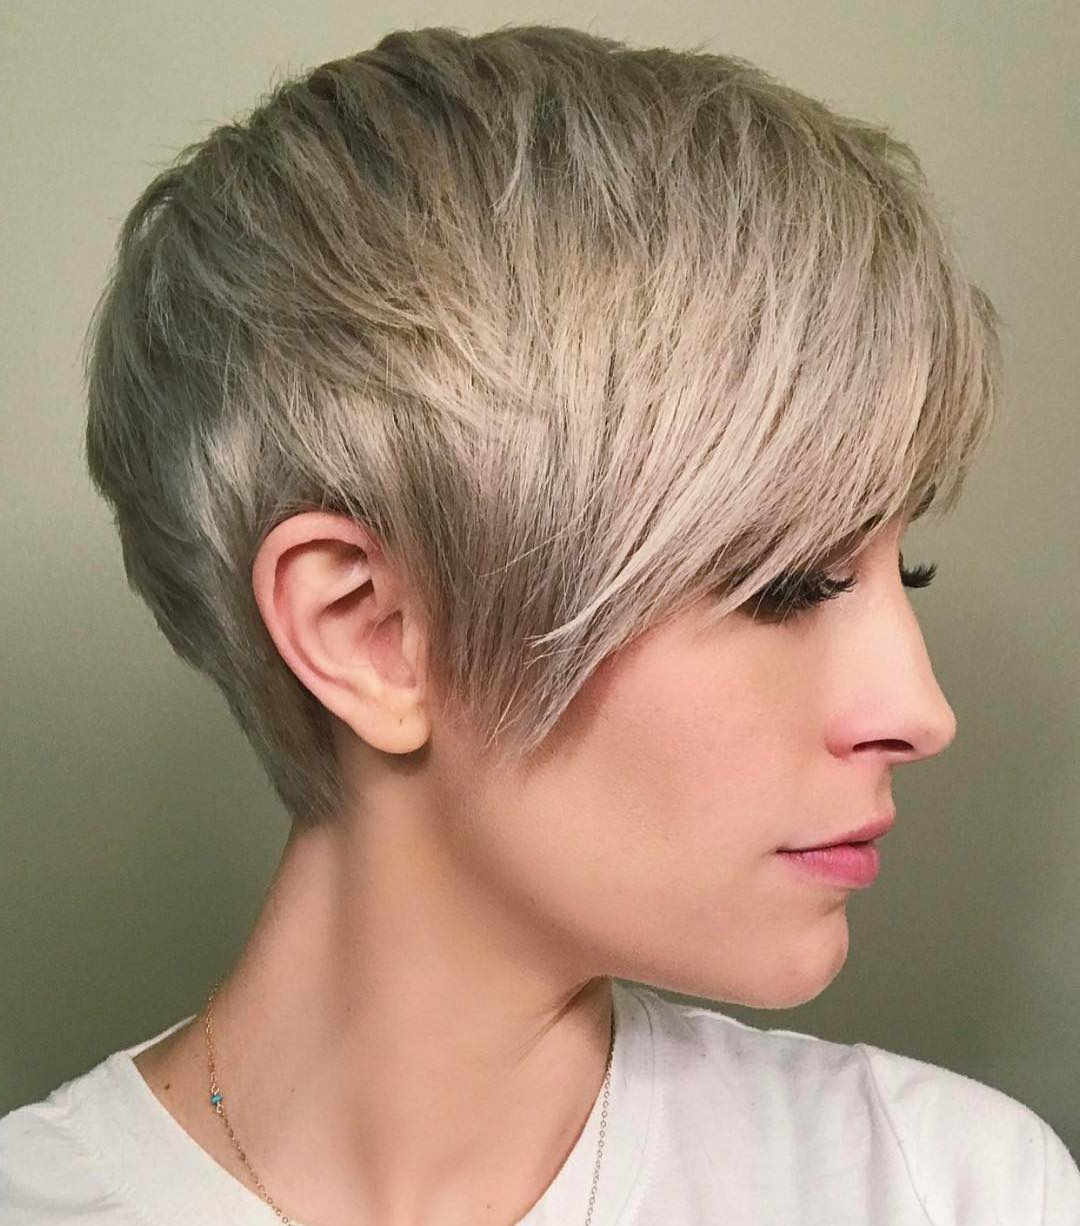 10 Best Short Straight Hairstyle Trends – Women Short Haircut Ideas 2018 Pertaining To Disconnected Pixie Hairstyles For Short Hair (View 1 of 20)